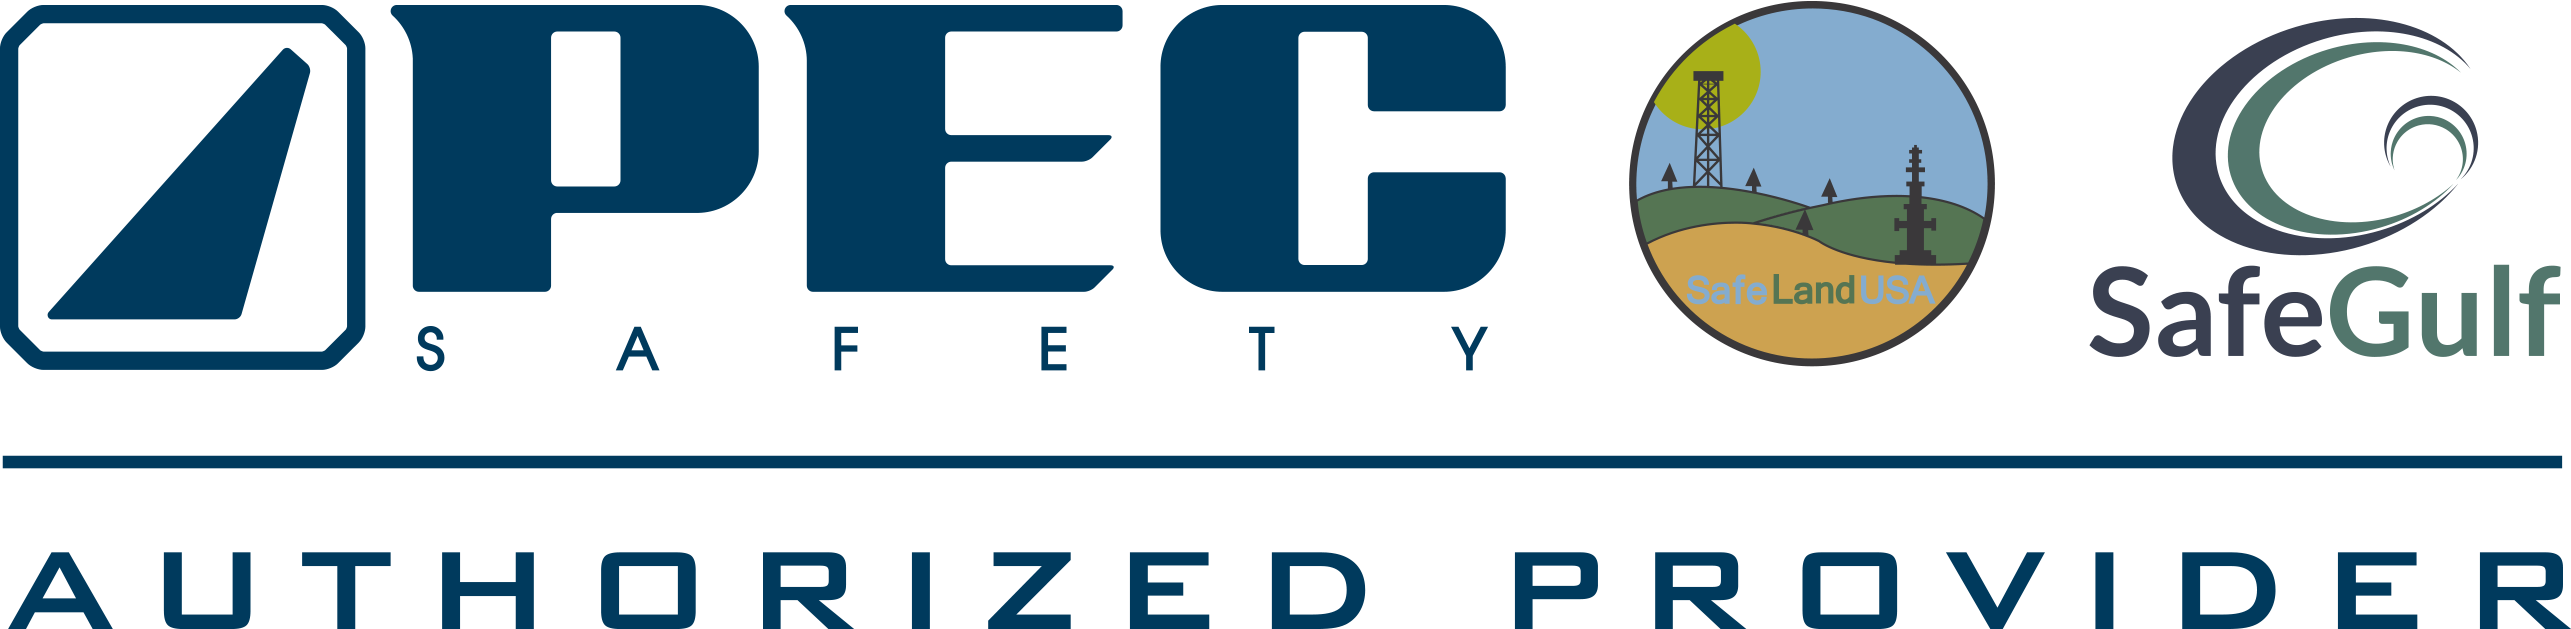 PEC SafeGulf SafeLandUSA Authorized Provider